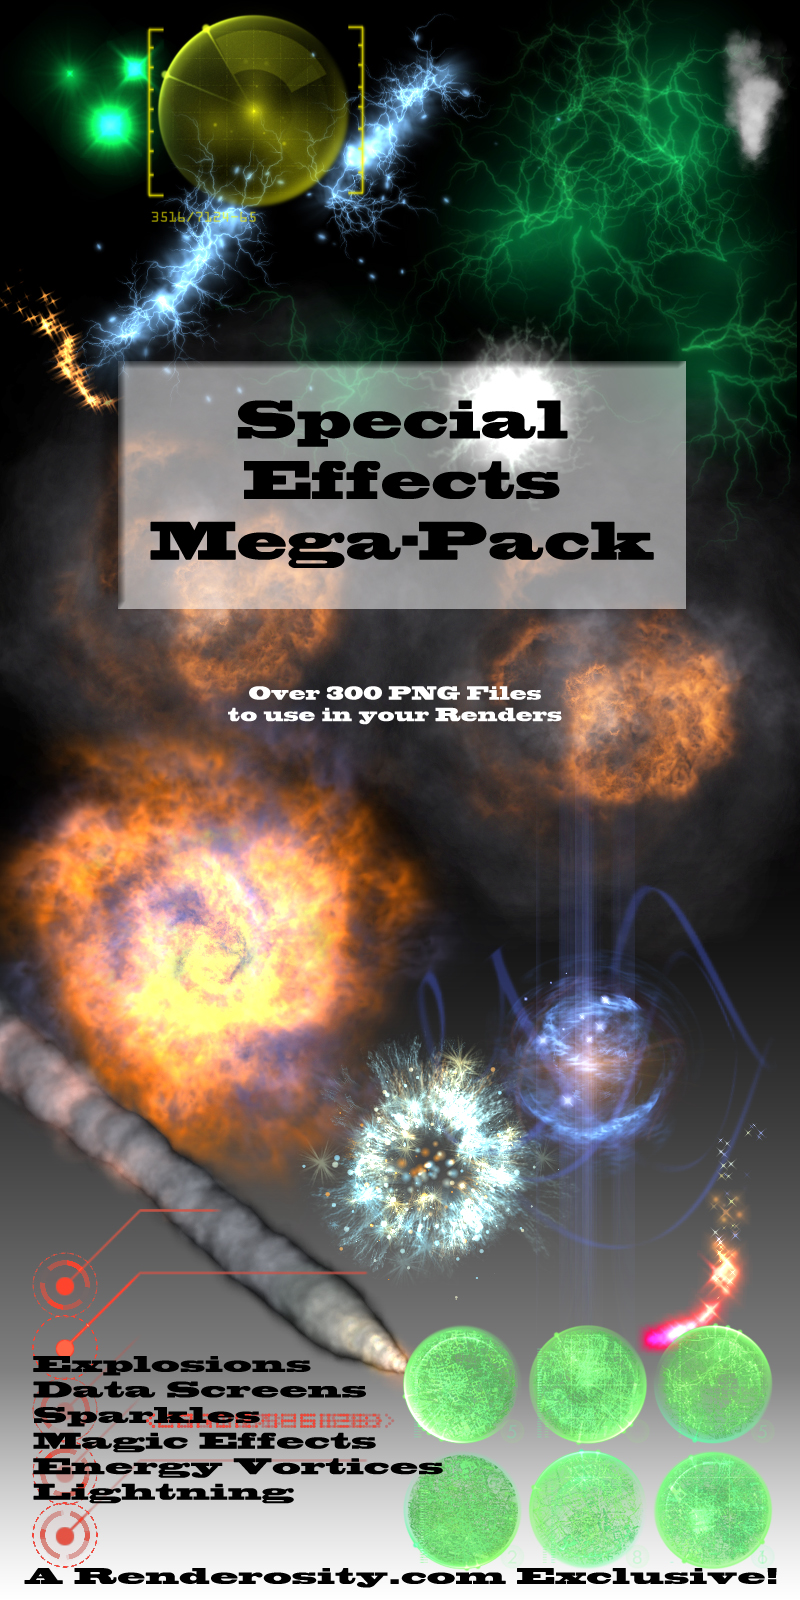 Special Effects Mega-Pack